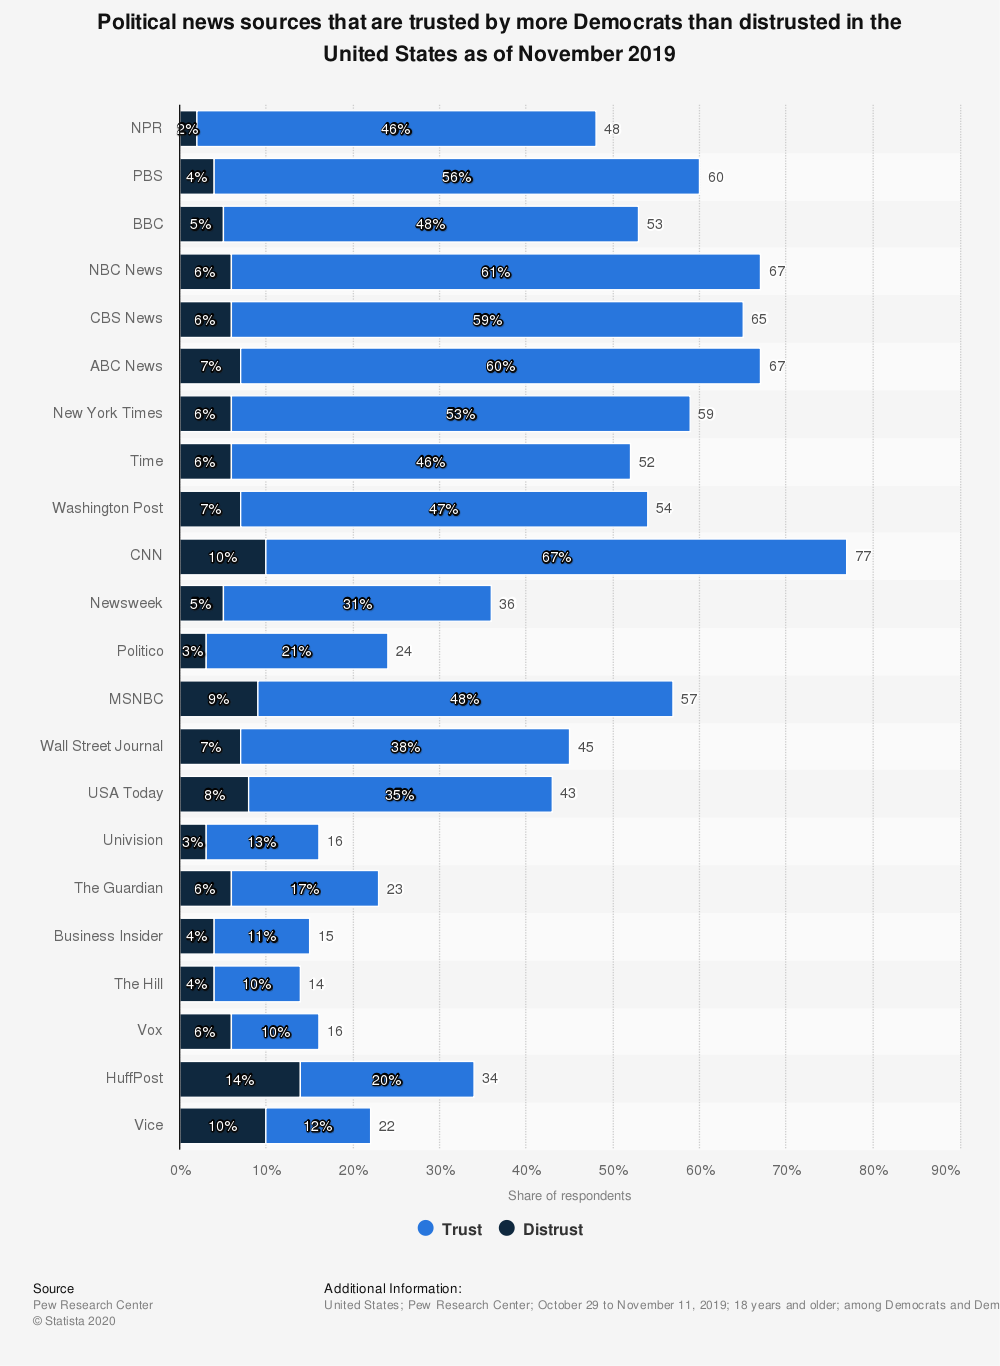 Statistic: Political news sources that are trusted by more Democrats than distrusted in the United States as of November 2019 | Statista